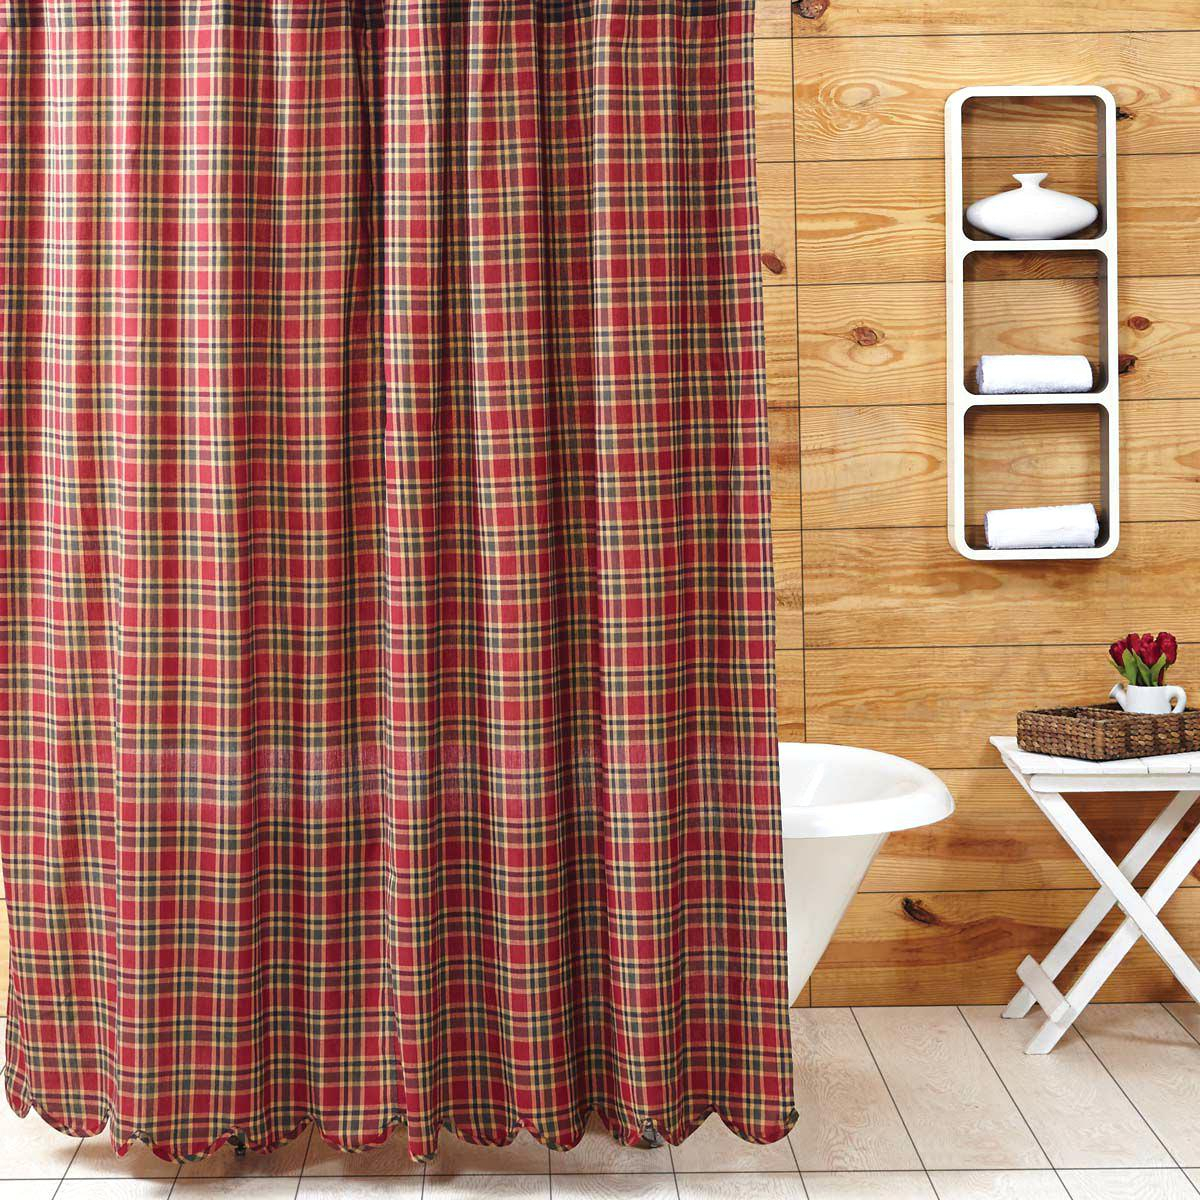 Awesome Plaid Shower Curtain Gallery - Design Ideas 2018 ...